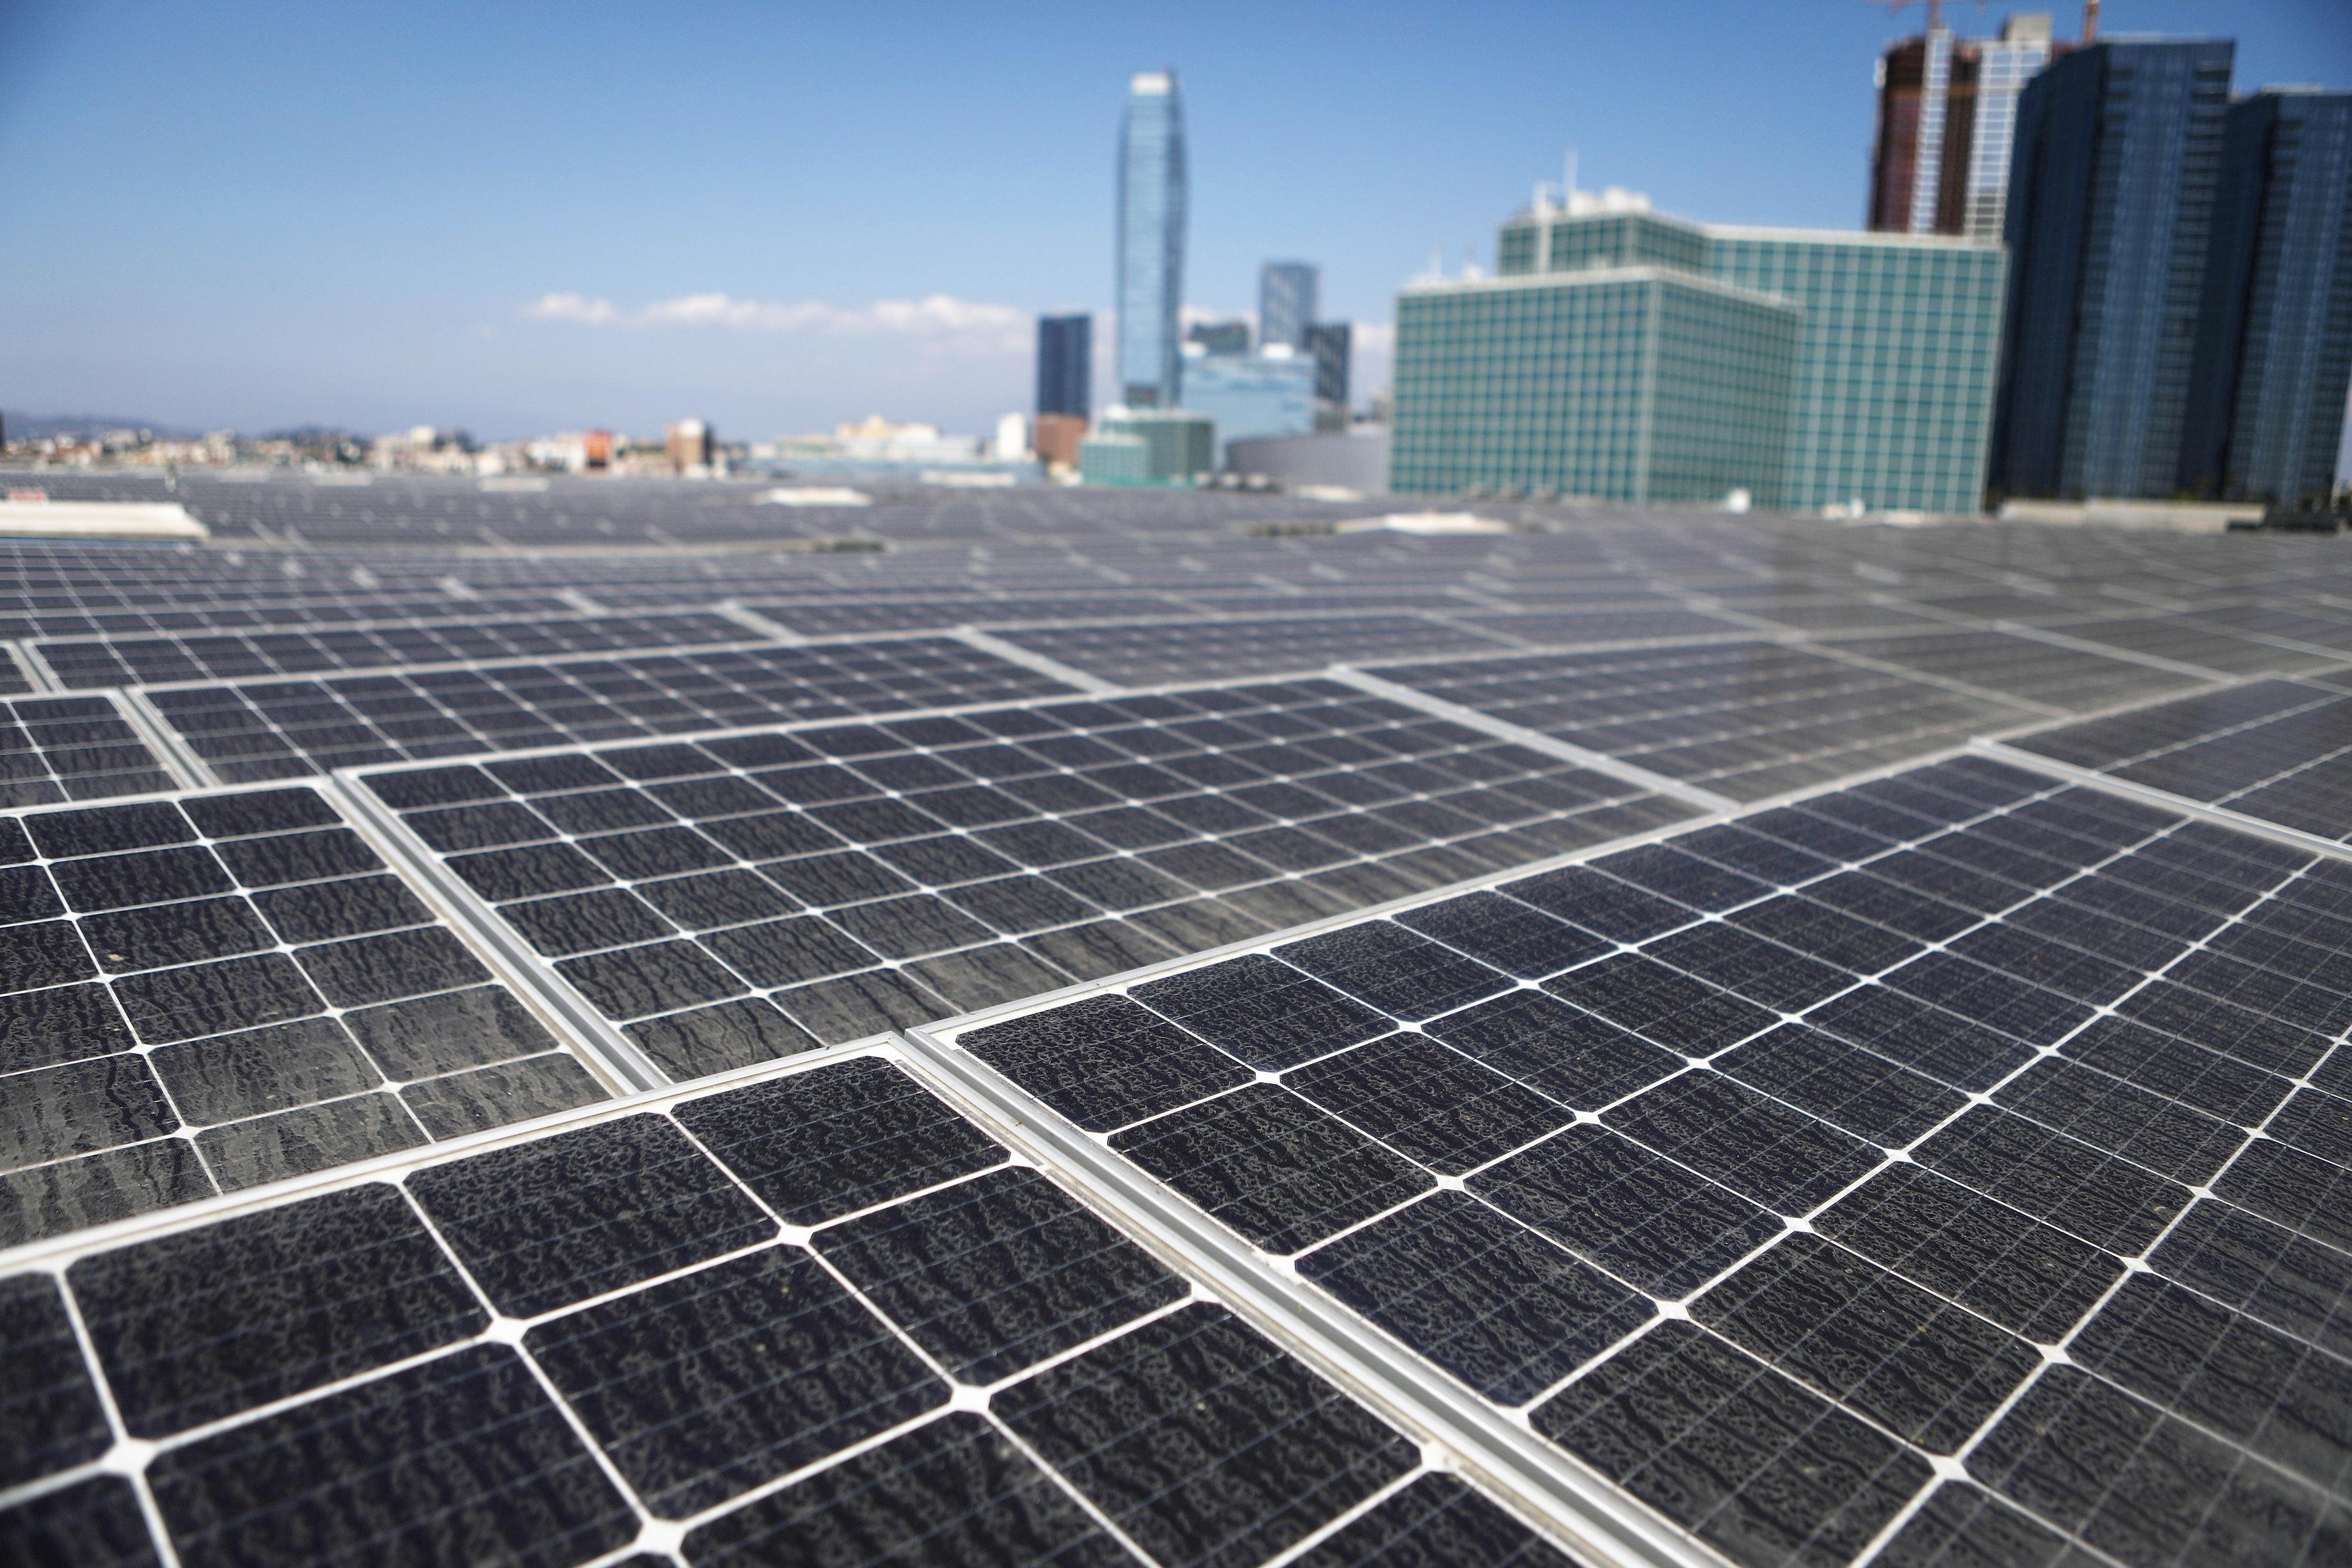 Renewable energy is booming. But it's not growing fast enough to fight climate change